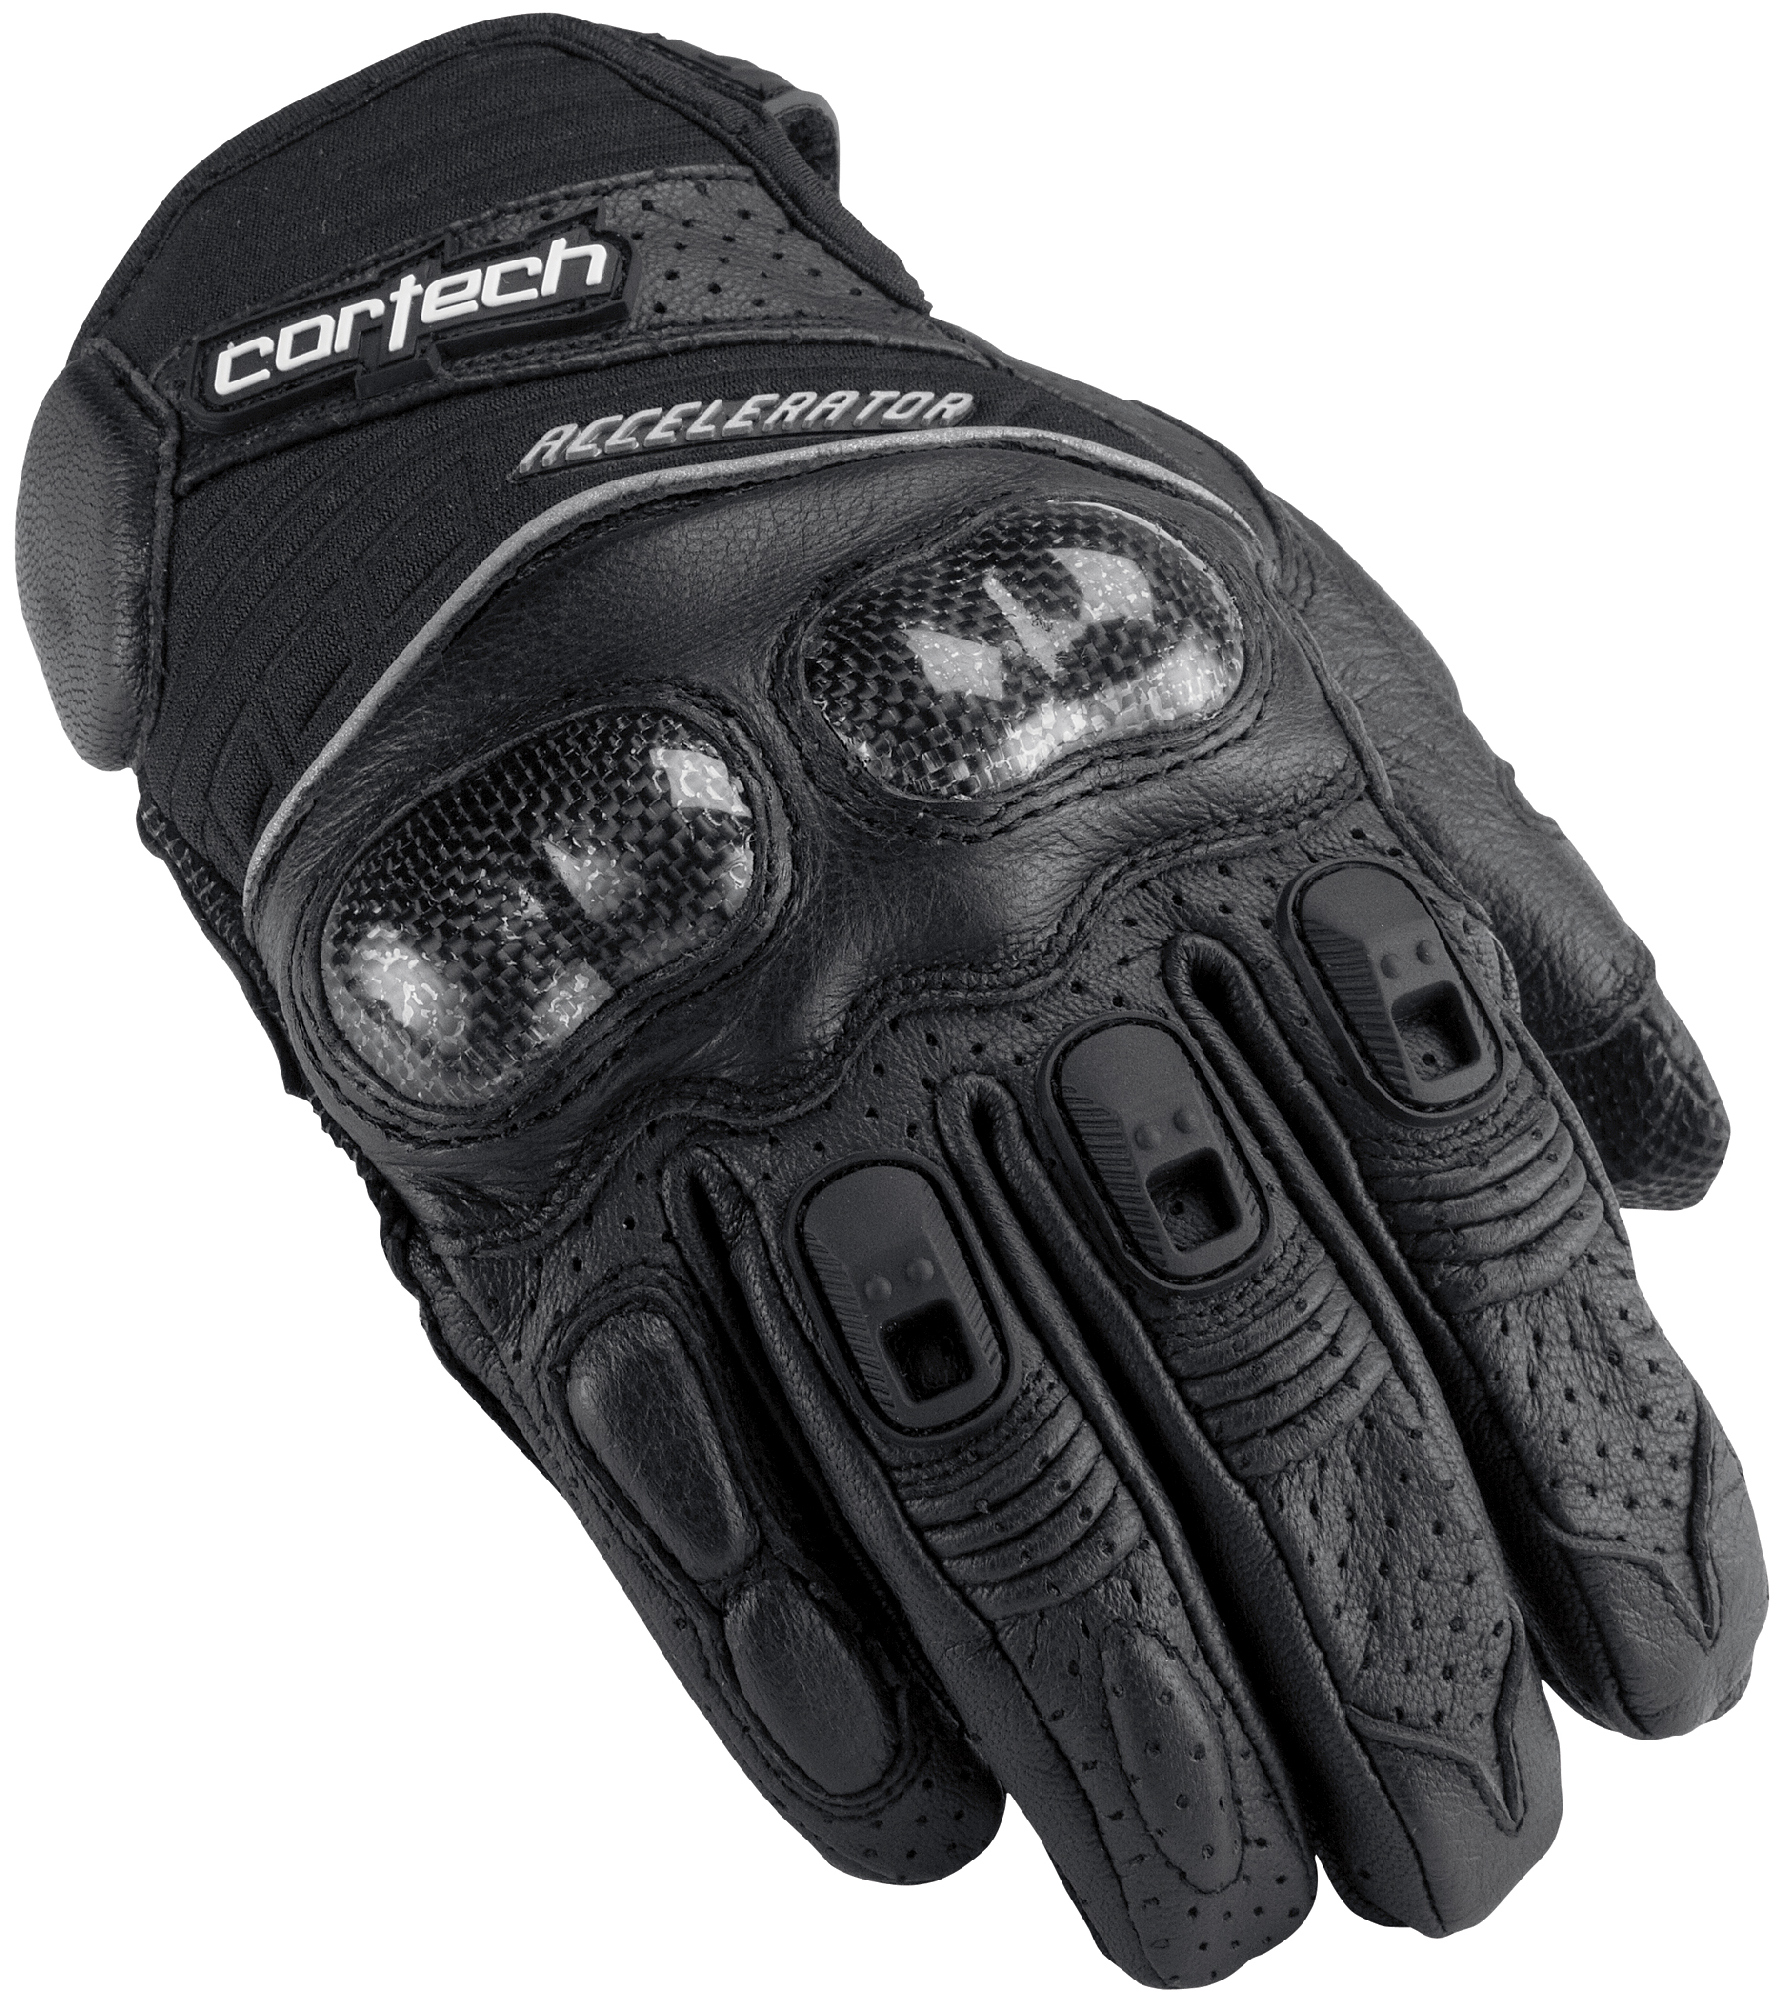 Xxl black leather gloves - Cortech Black Mens 2xl Accelerator Series 3 Leather Motorcycle Gloves Xxl